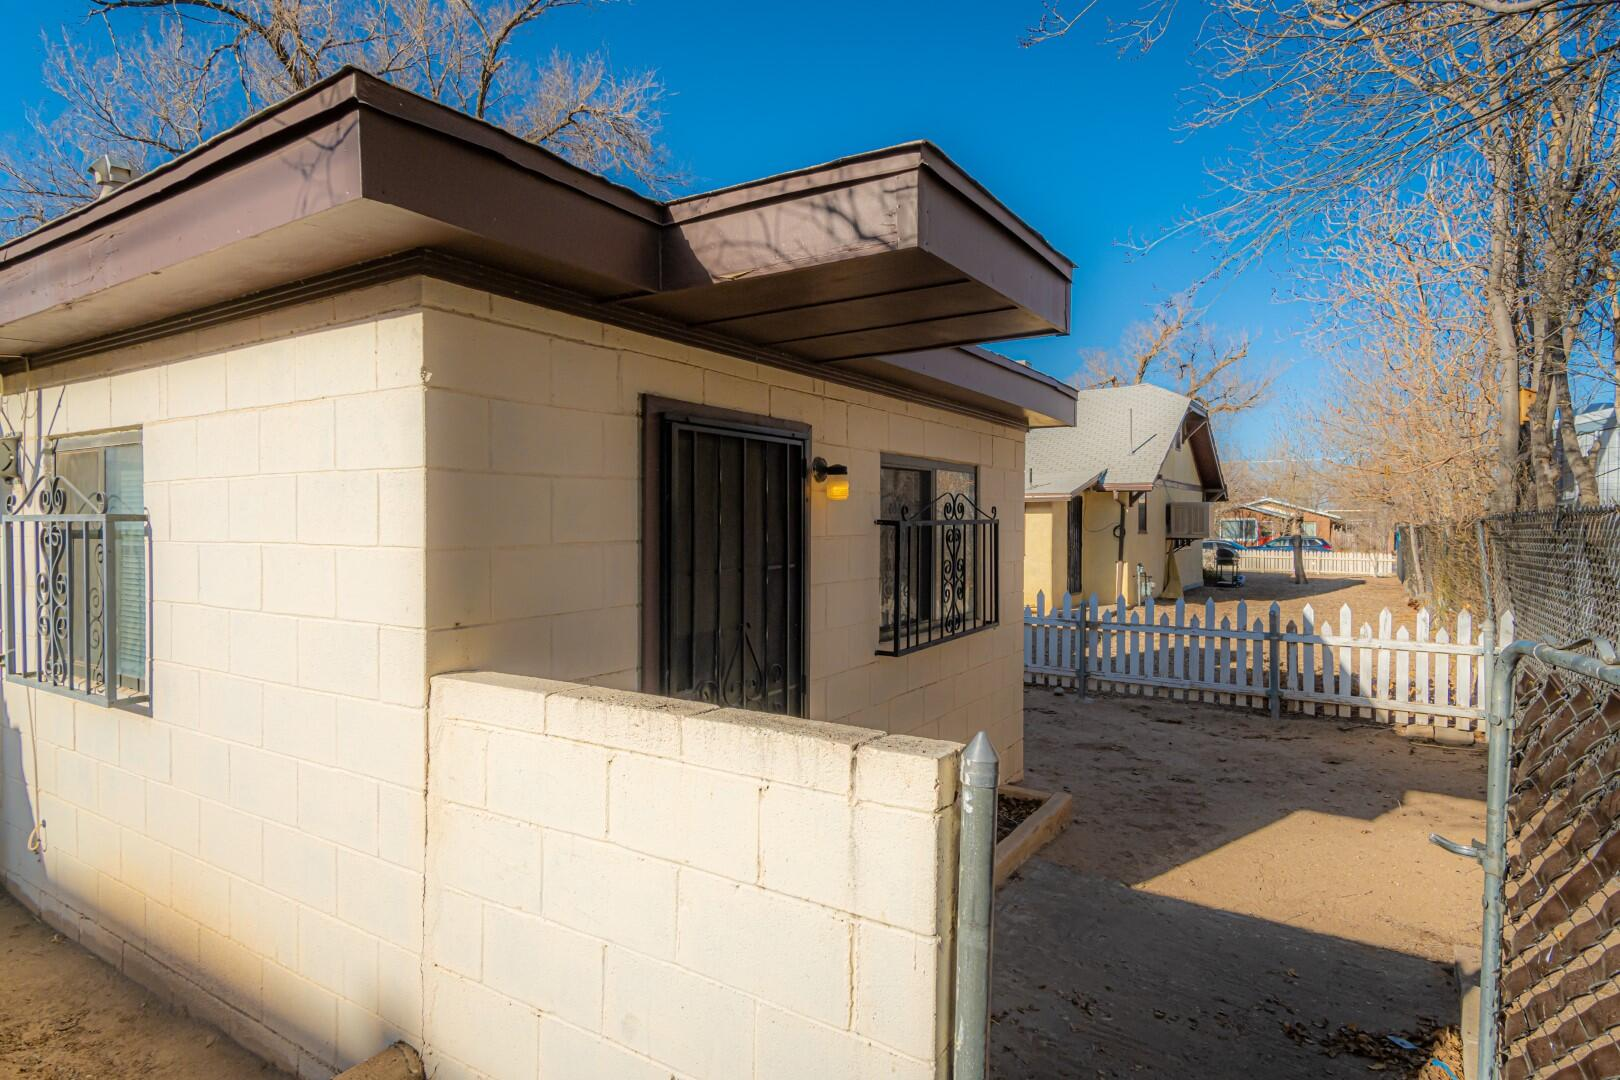 Incredible property steps away from UNM.  Main house has 860 sq ft,  2 stories with 1 bedroom & .75 bath upstairs and 1 bedroom with full bath downstairs, kitchen & living room. Casita is 528 sq ft & has own access with 1 bedroom and .75 bath,  kitchen, living room & washer/dryer hook up, 6 yr old wall furnace.  Front & back yard privacy.  1-car garage.  990 ft parking with 3-car parking permit.  Current Lease Agreement expires September 30, 2021.